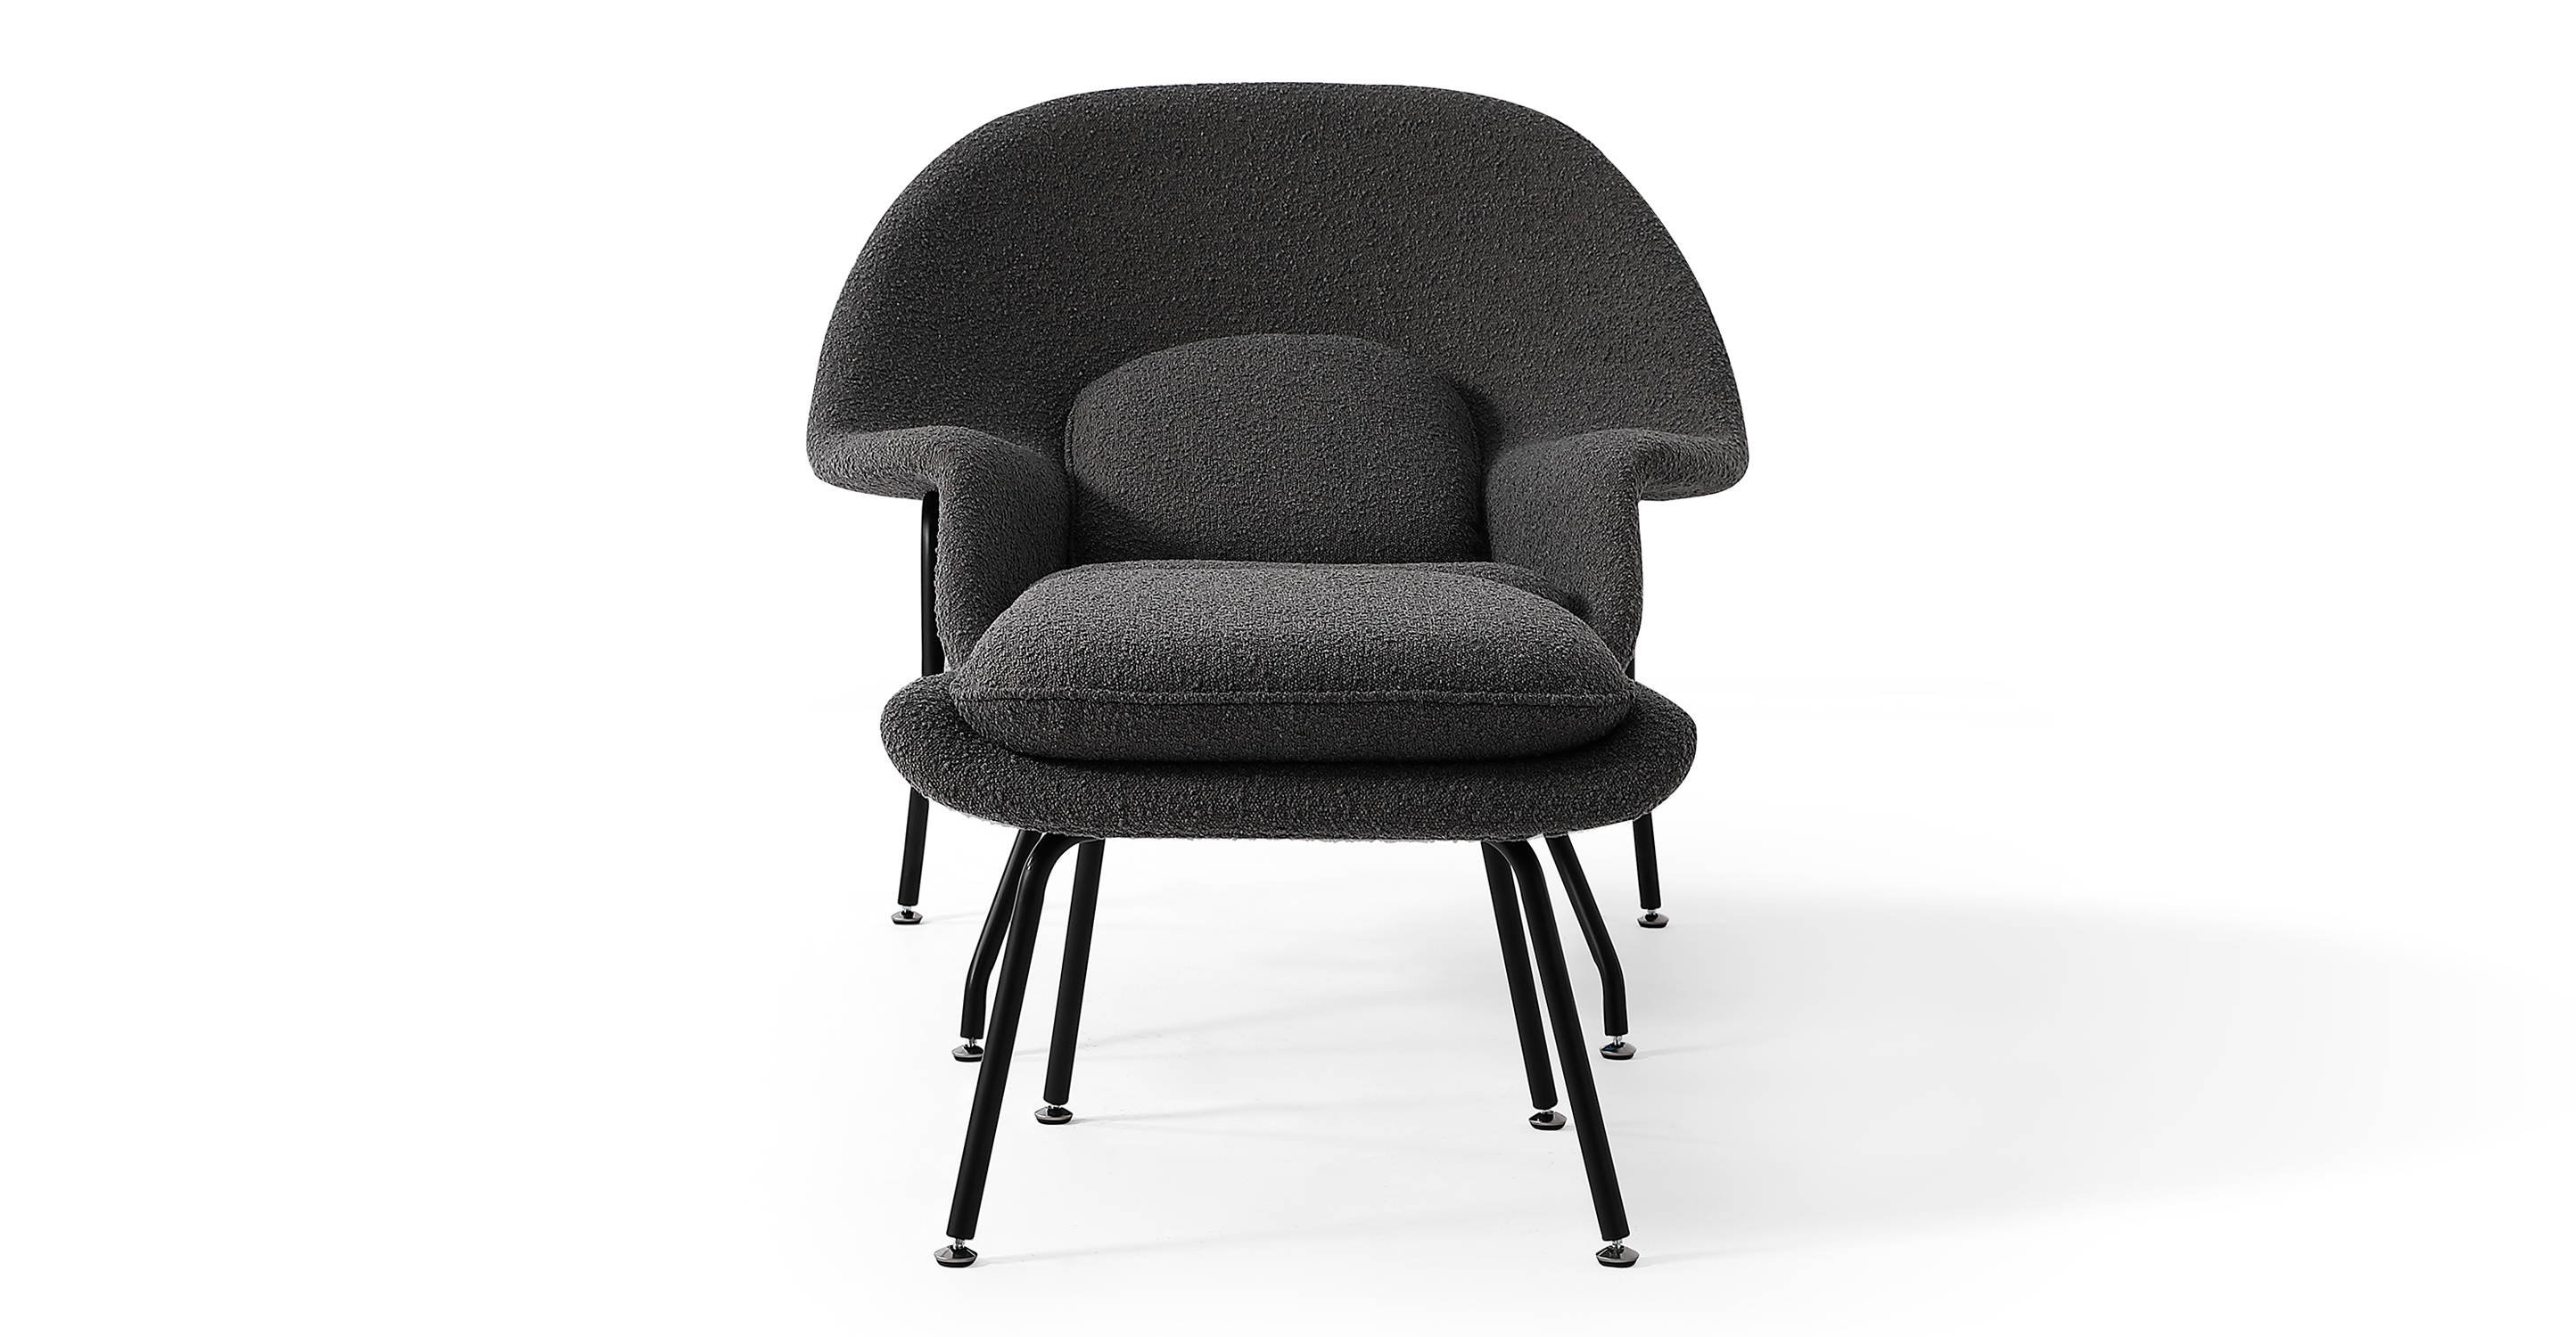 Womb Fabric Chair & Ottoman, Gris Boucle